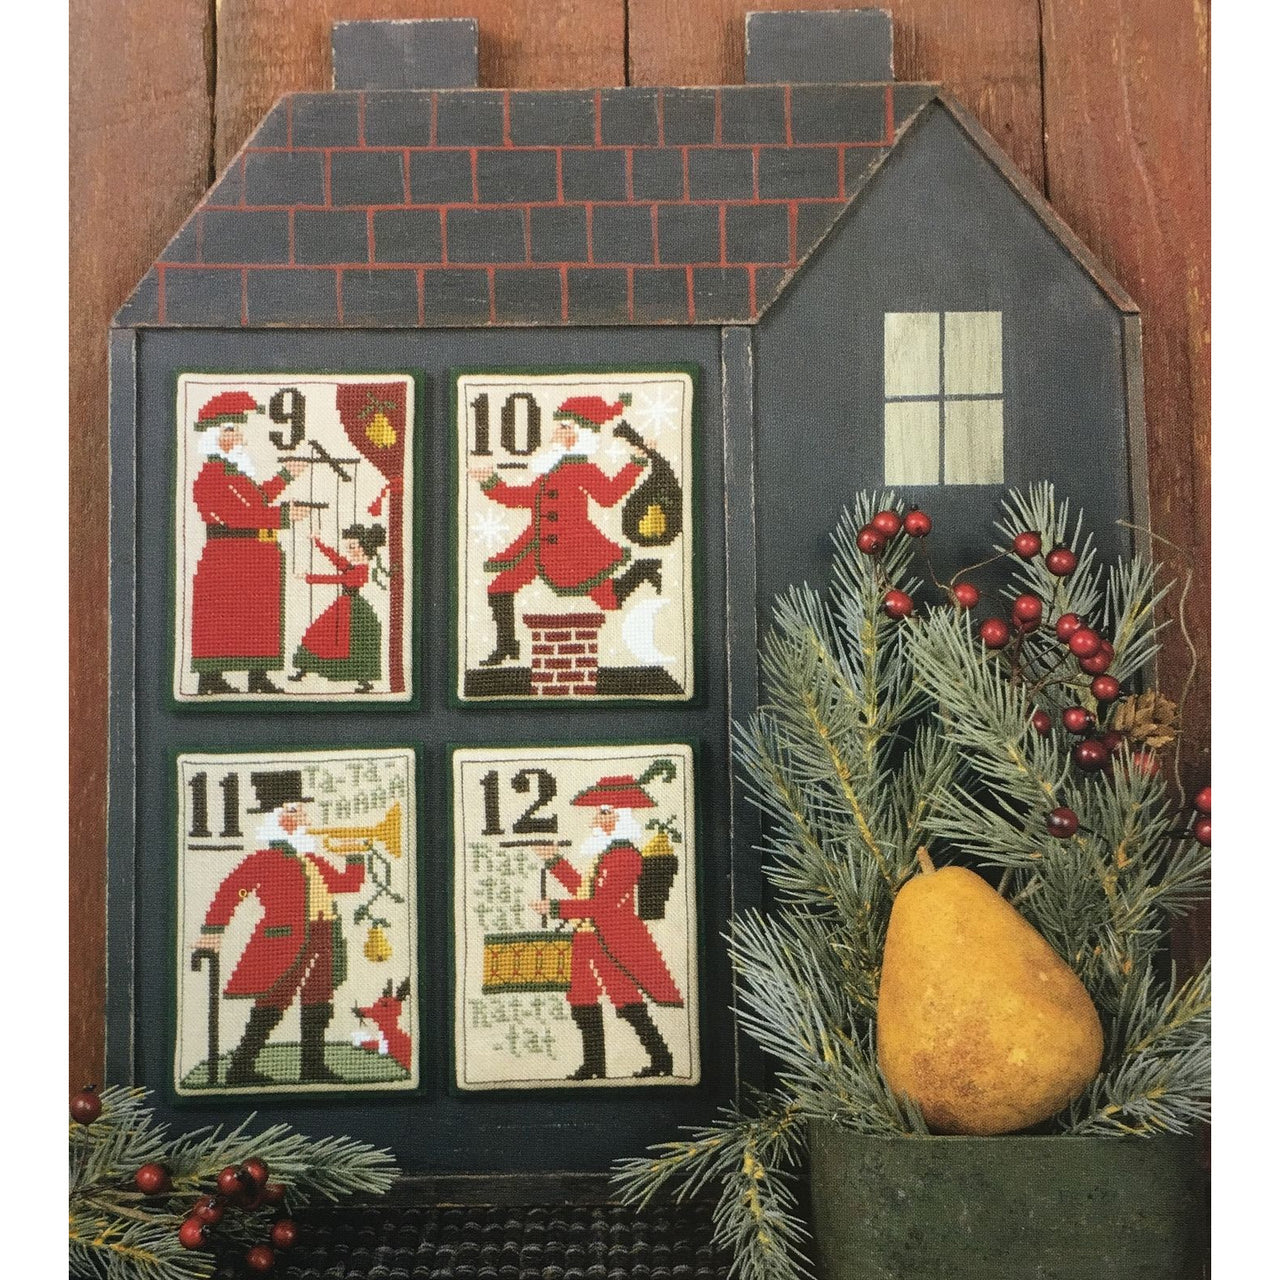 Santa's 12 Days Christmas 9-12 Cross Stitch Pattern Book 127